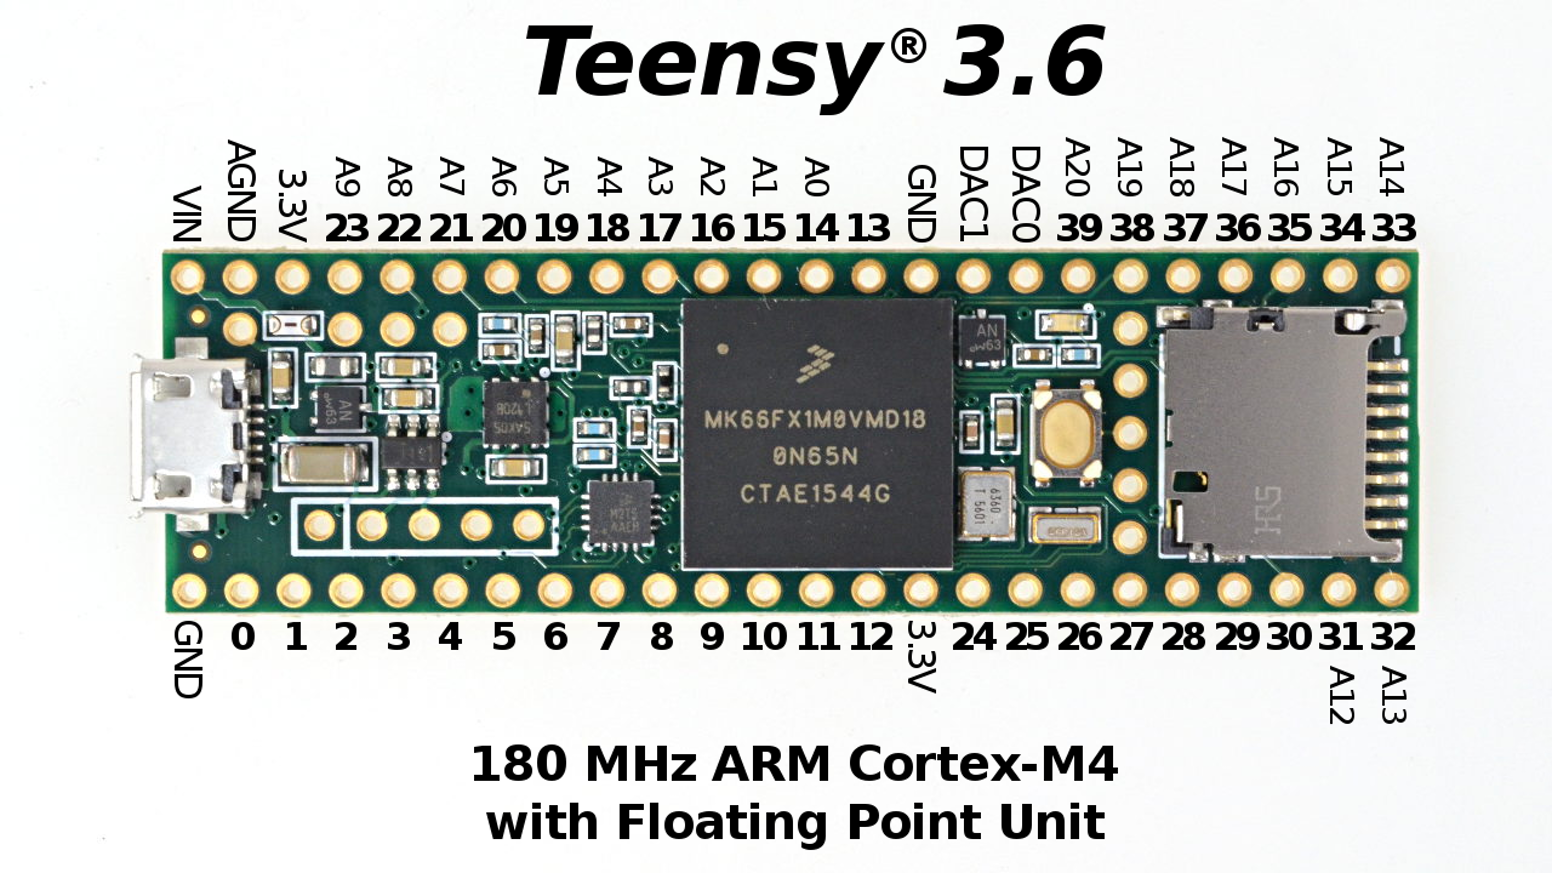 Teensy 3.5 & 3.6 - Powerful Microcontrollers For Making Awesome DIY Electronic Projects